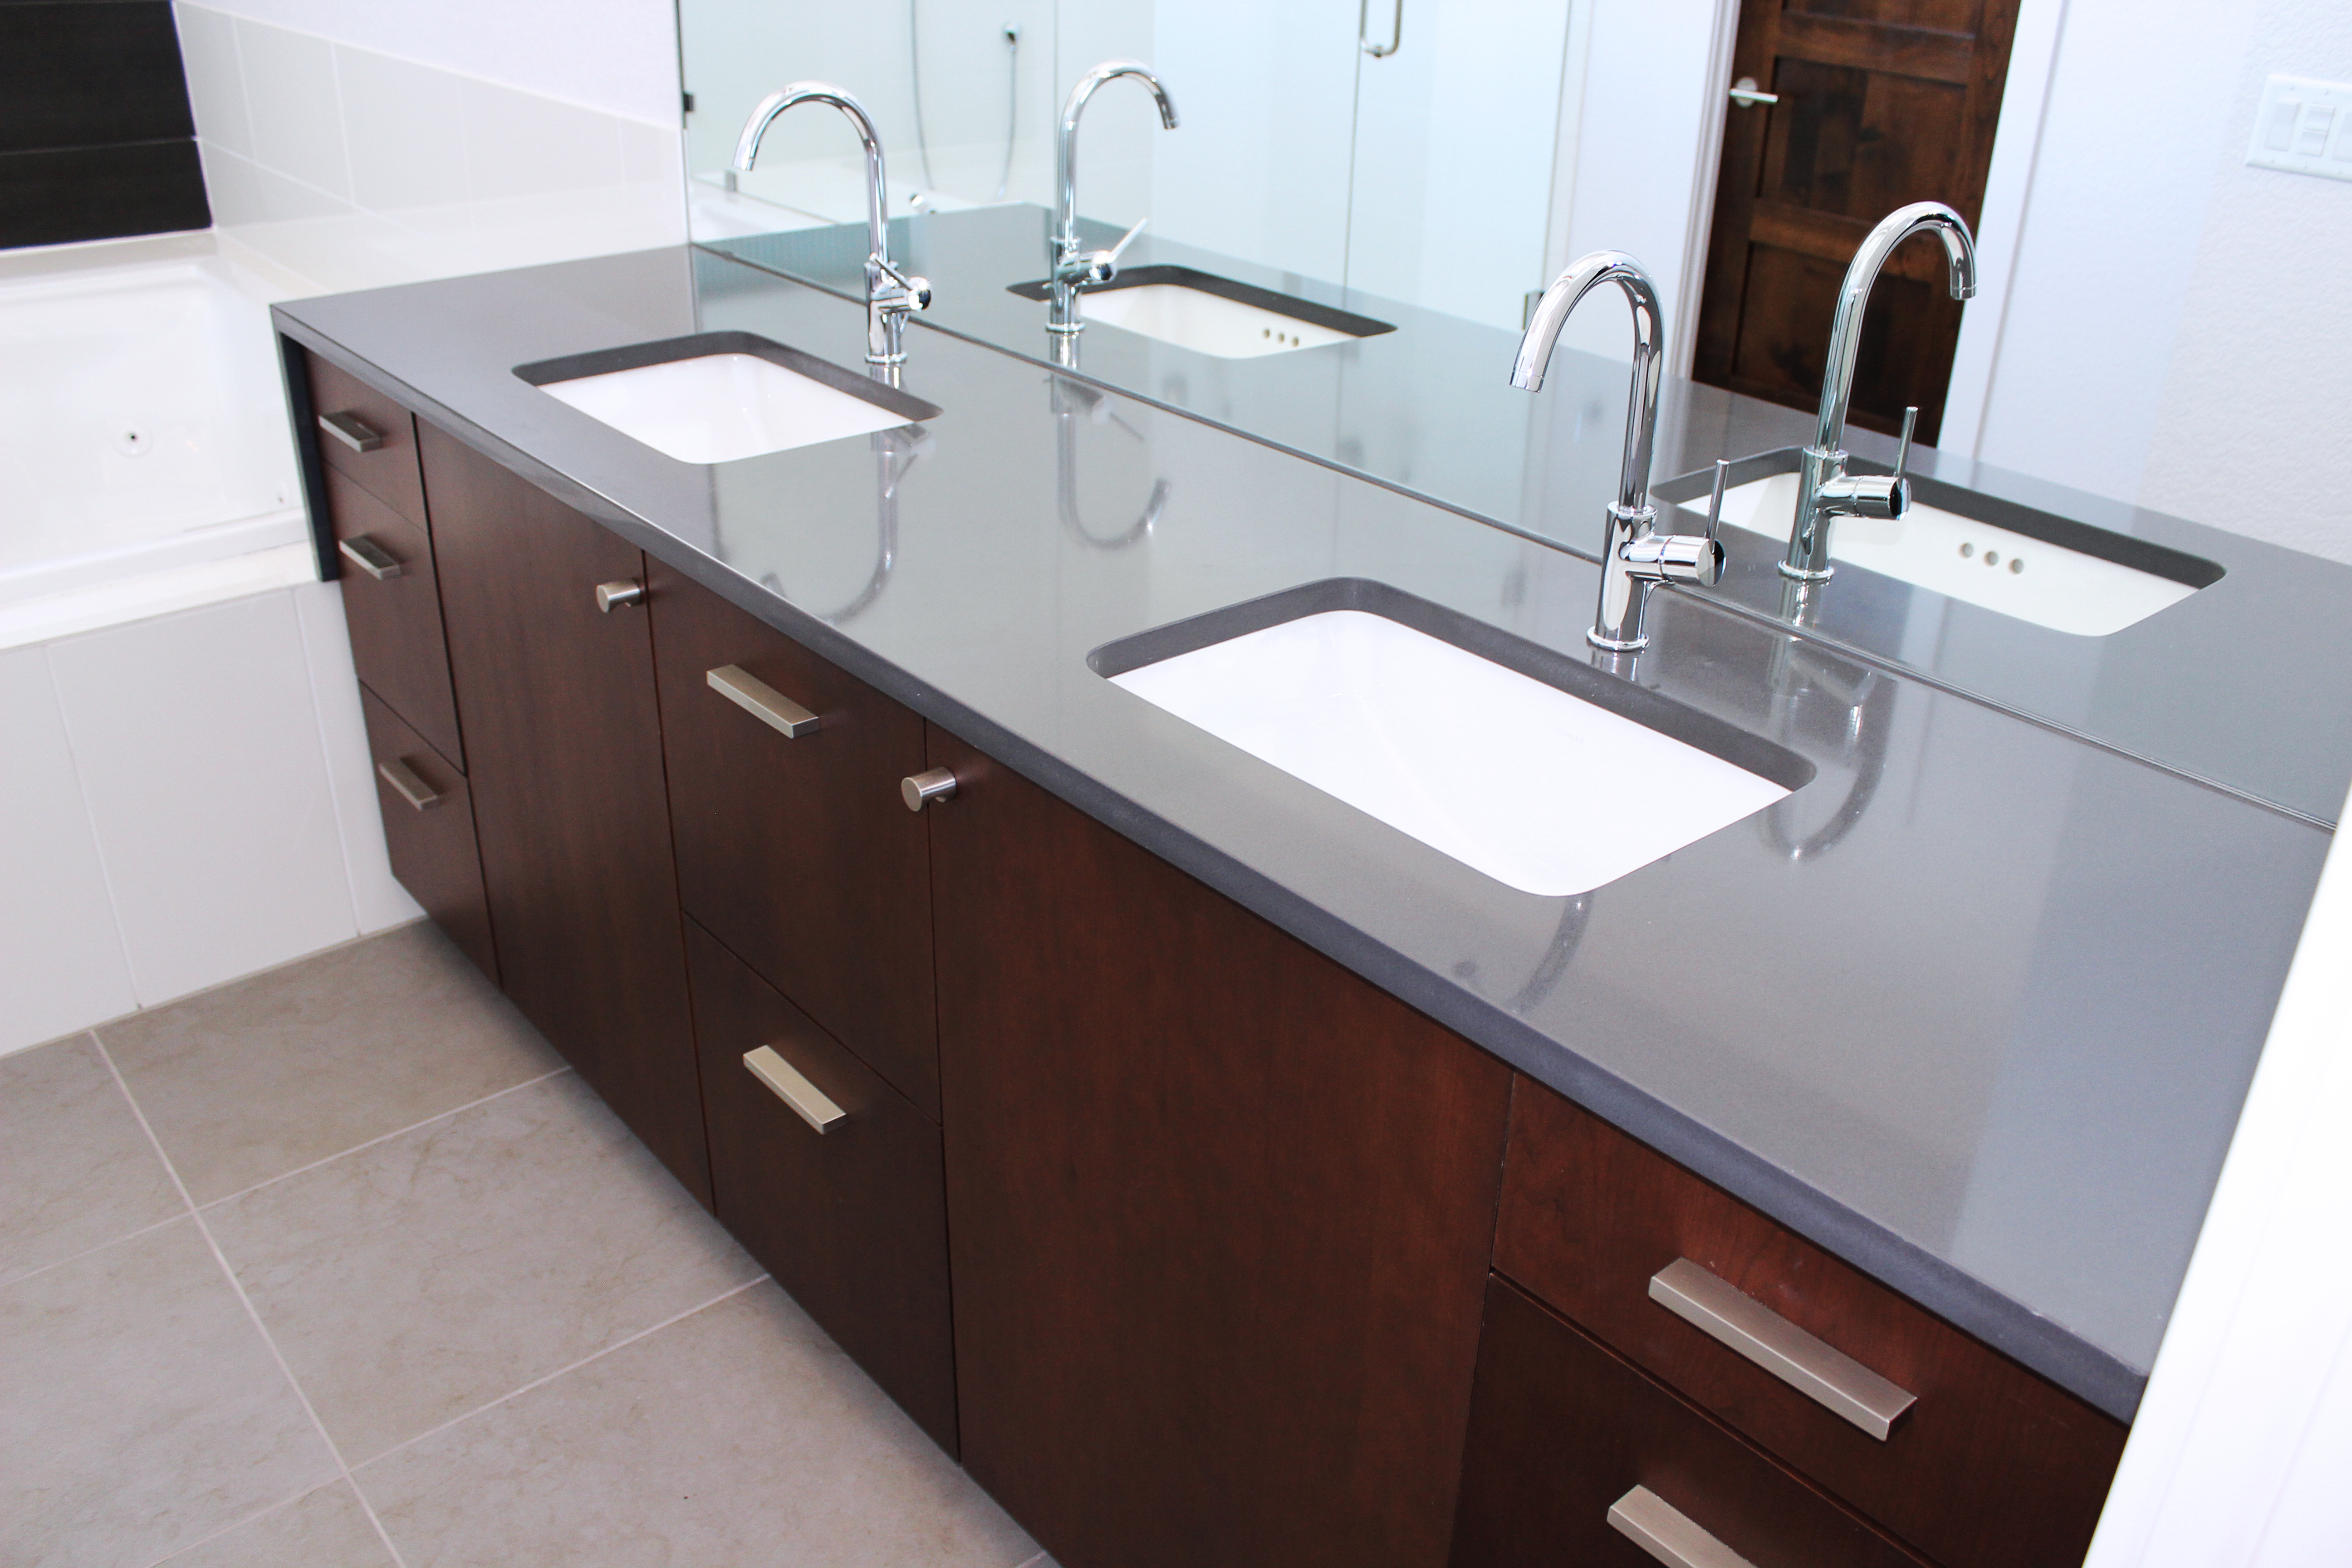 Best Countertops For Bathrooms The Top Shop Inc American Cabinet And Flooring Inc